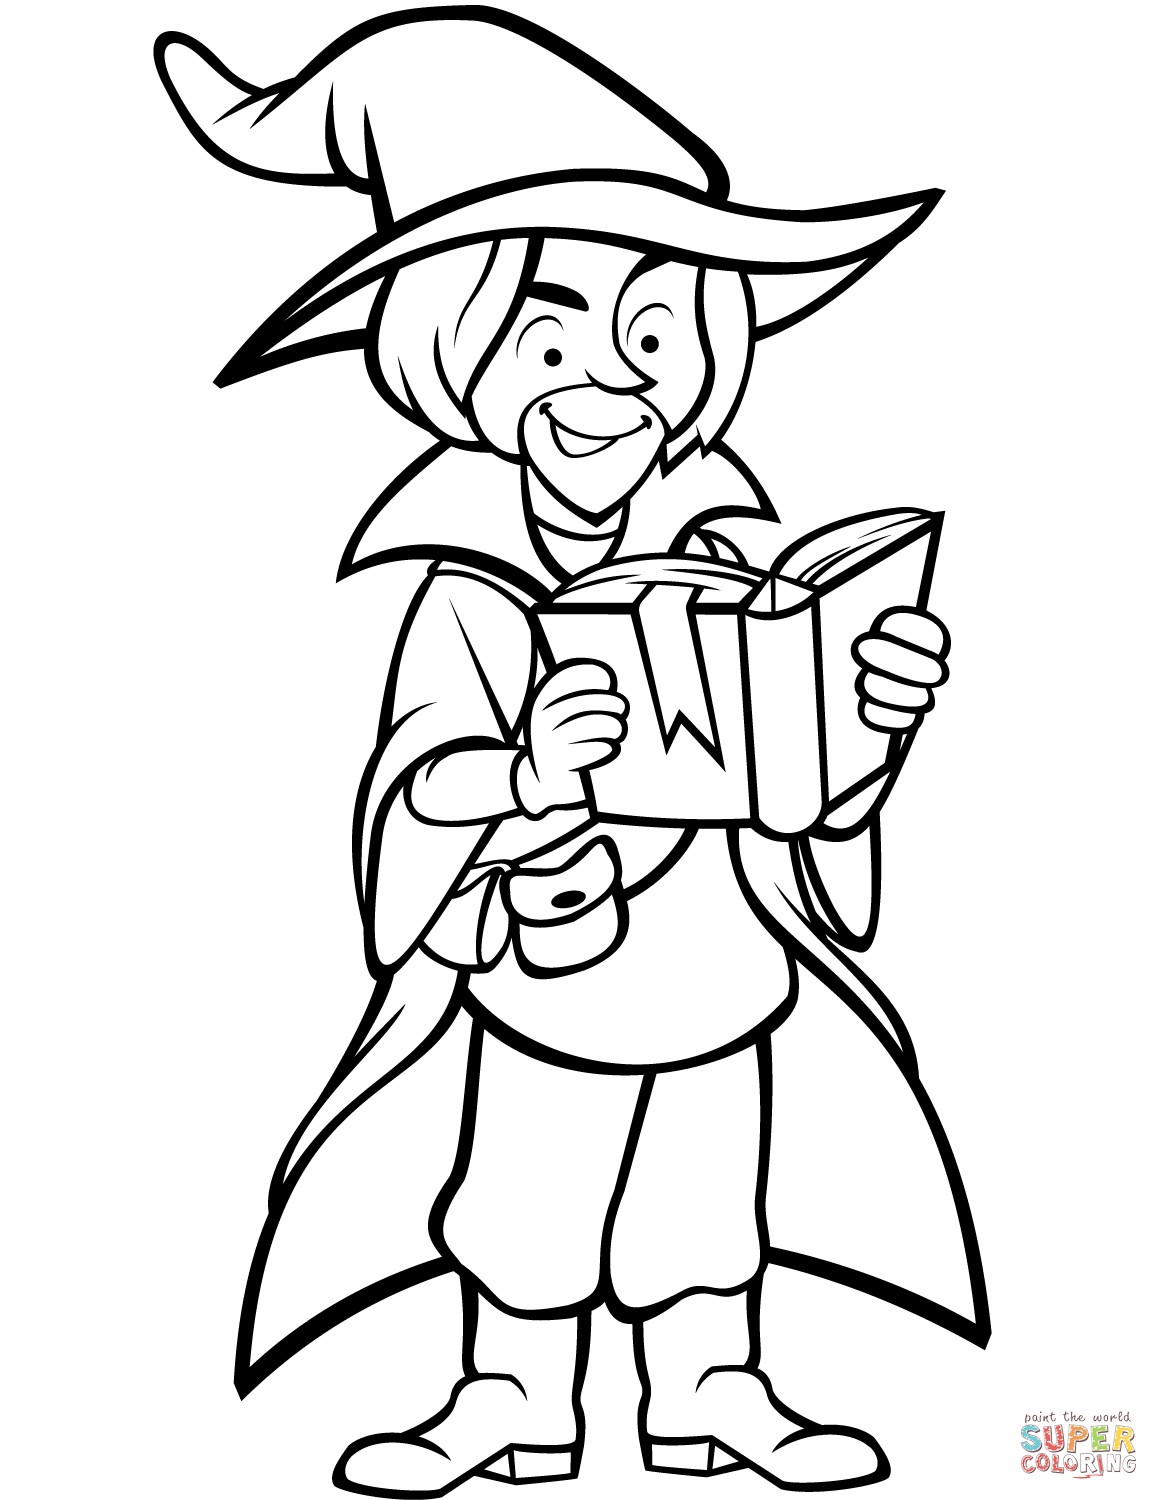 wizard coloring pages wizard coloring download wizard coloring for free 2019 wizard coloring pages